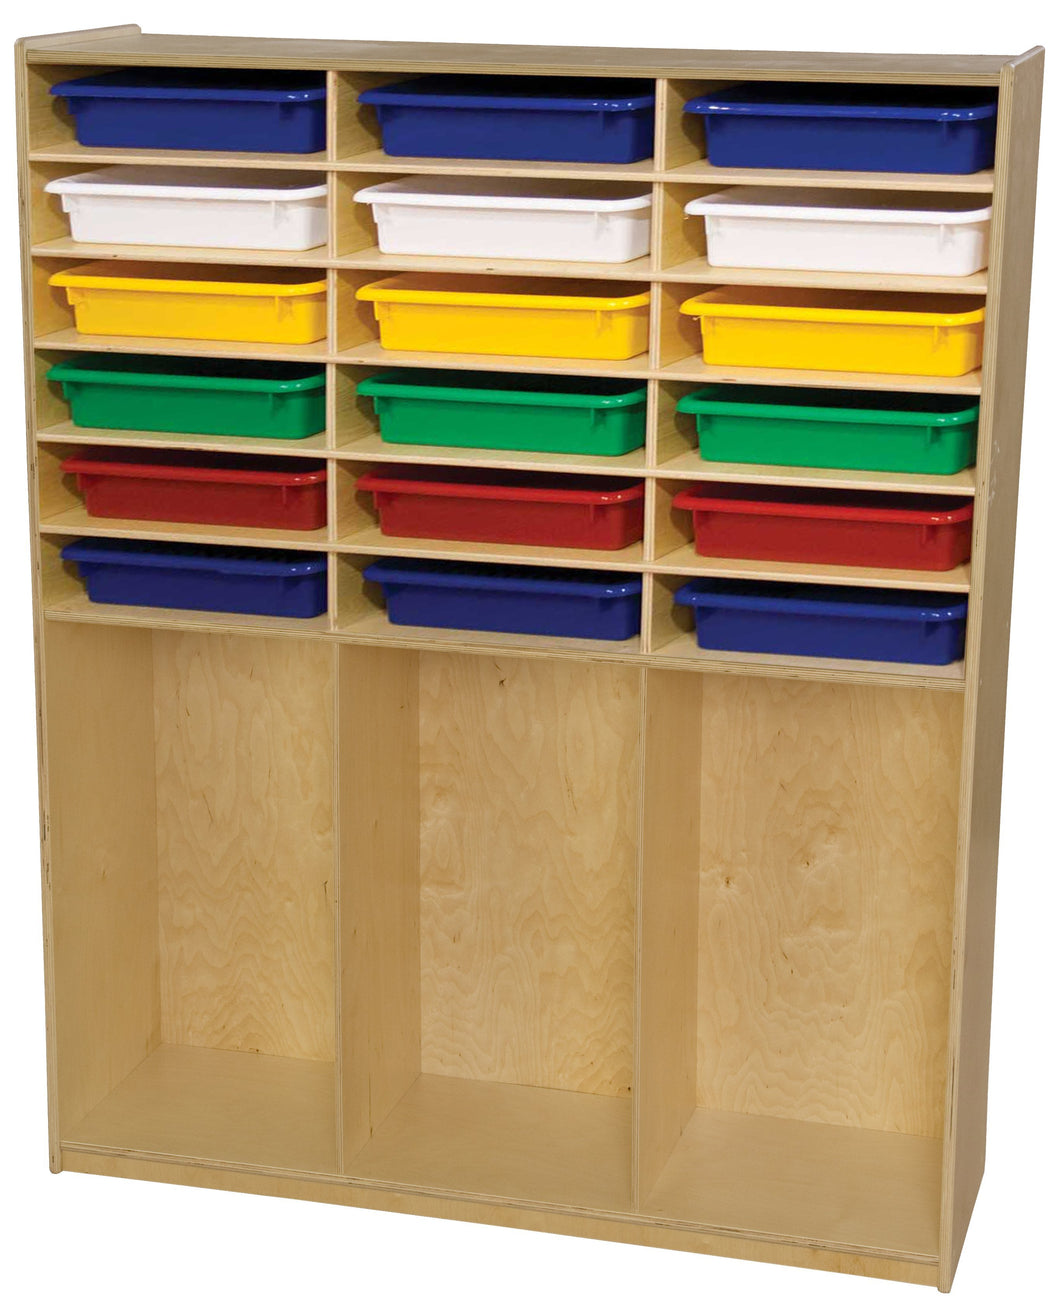 Storage Shelf with Colored Trays